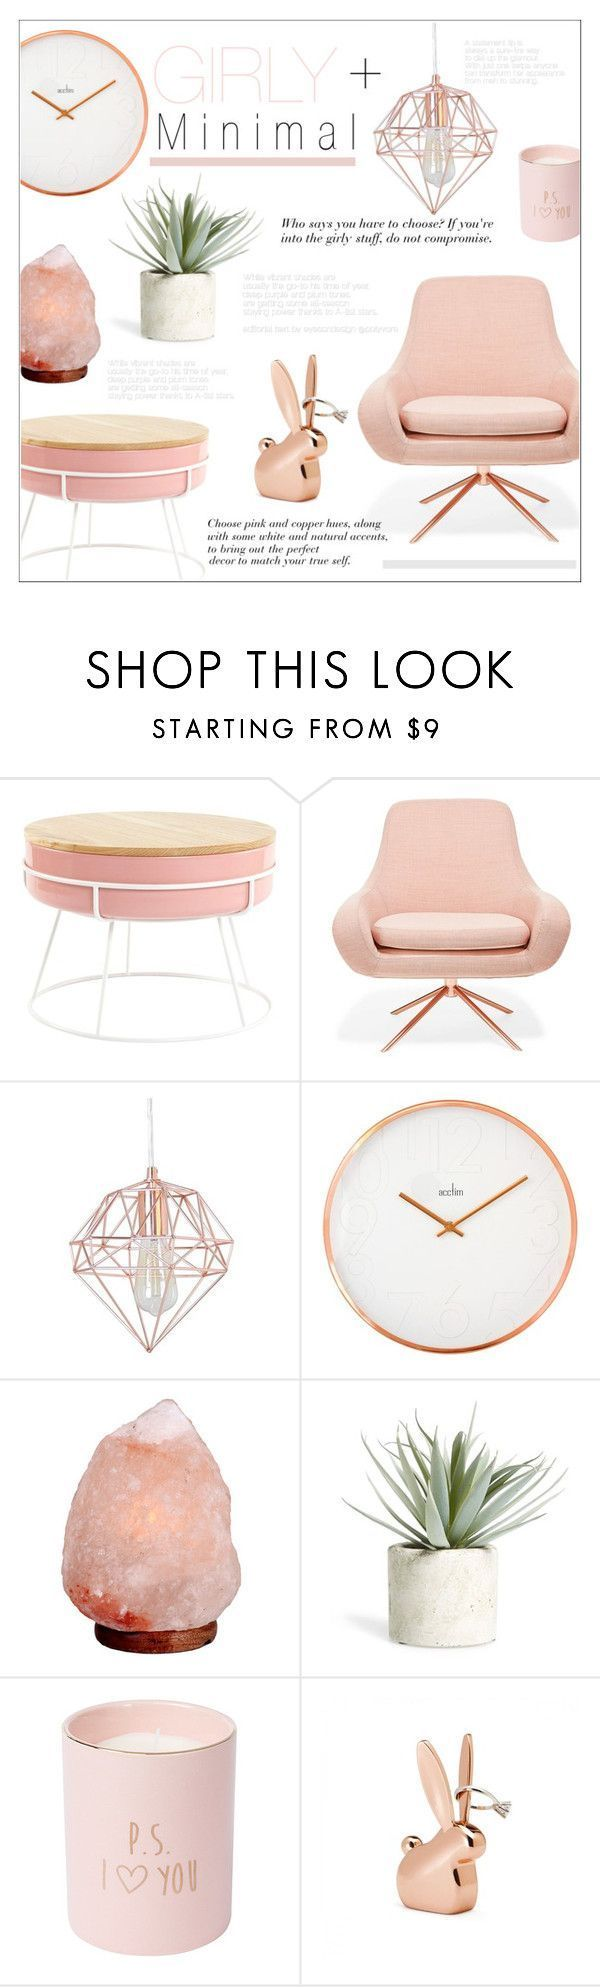 cool Girly & Minimal by http://www.danaz-home-decor-ideas.top/home-decor-accessories/girly-minimal/